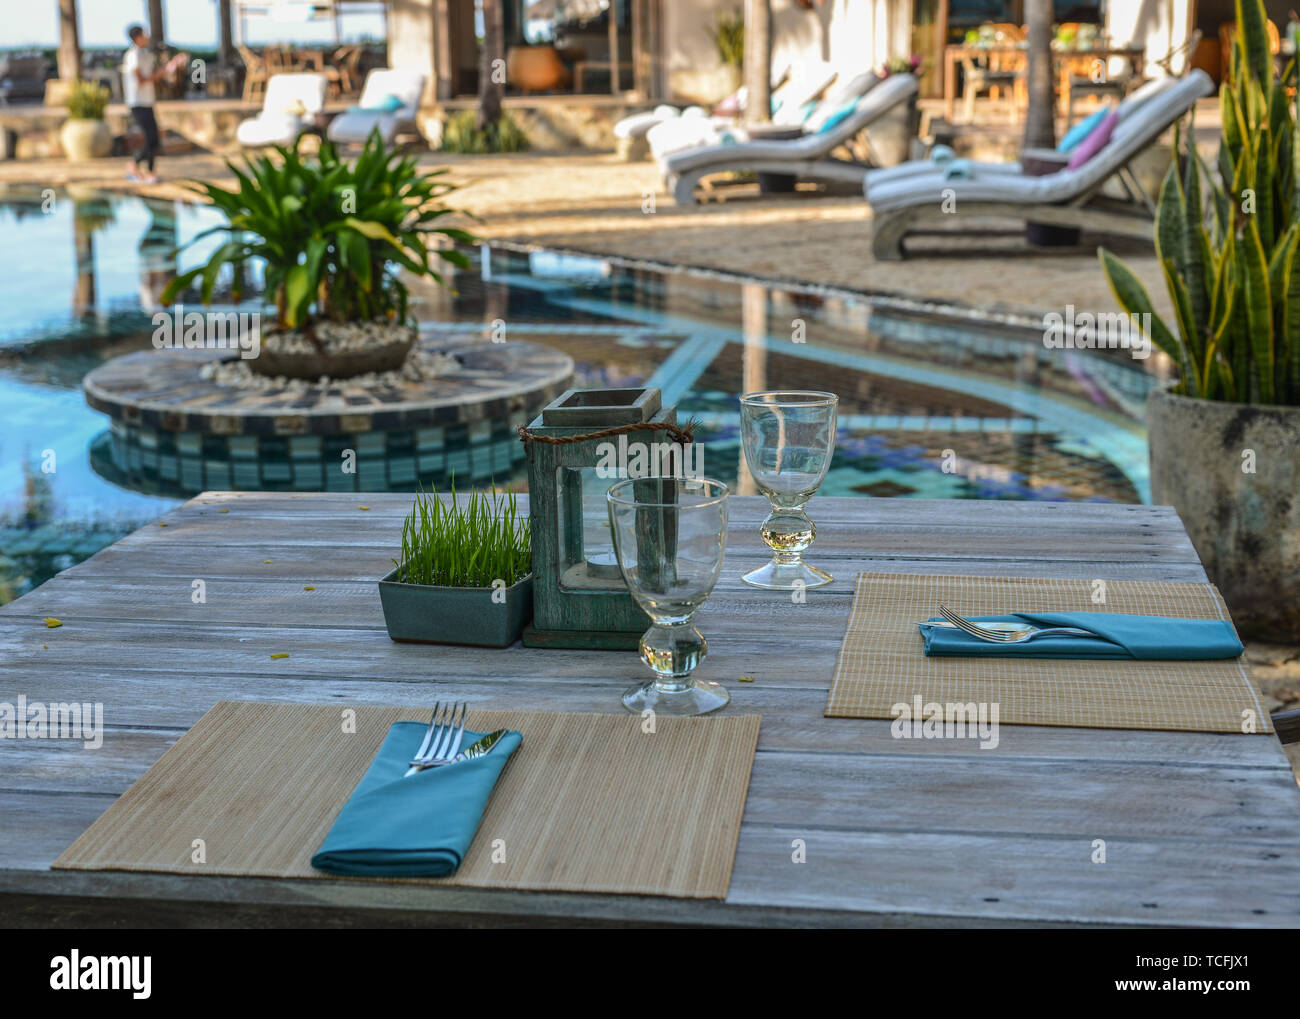 Outdoor Furniture In The Luxury Restaurant Tables And Chairs Stock Photo Alamy